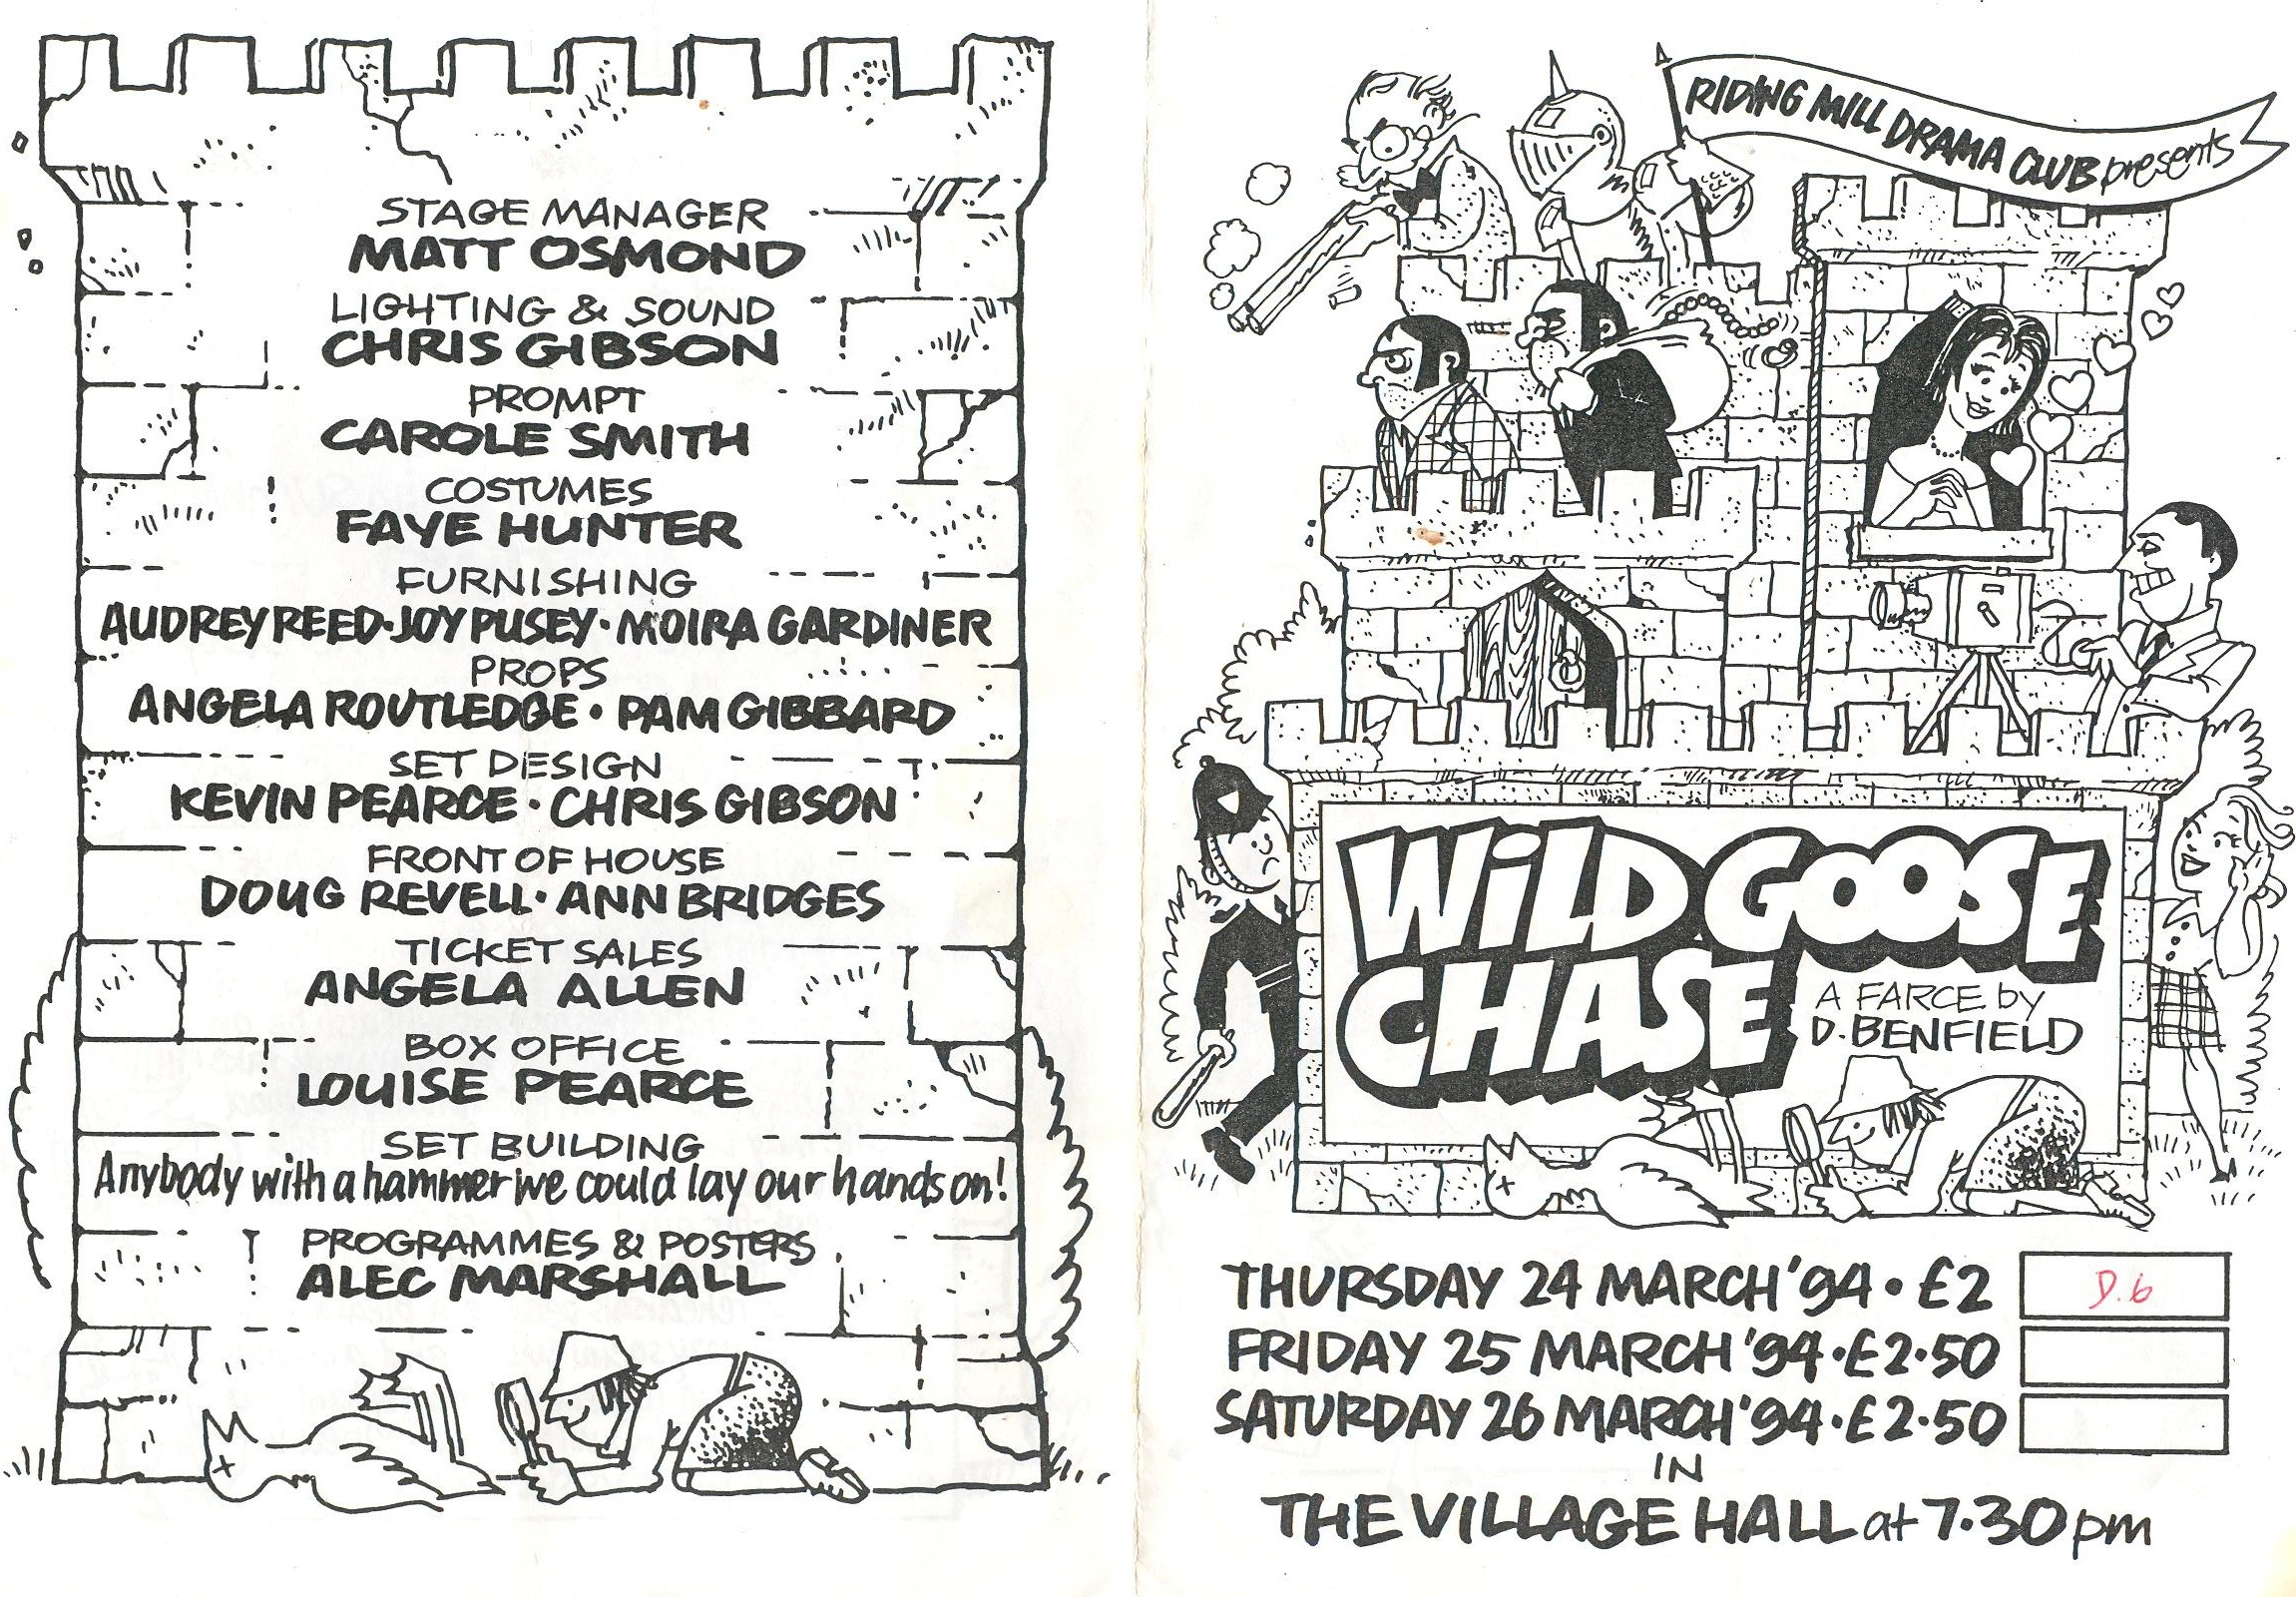 1994 Riding Mill Drama Club, Wild Goose